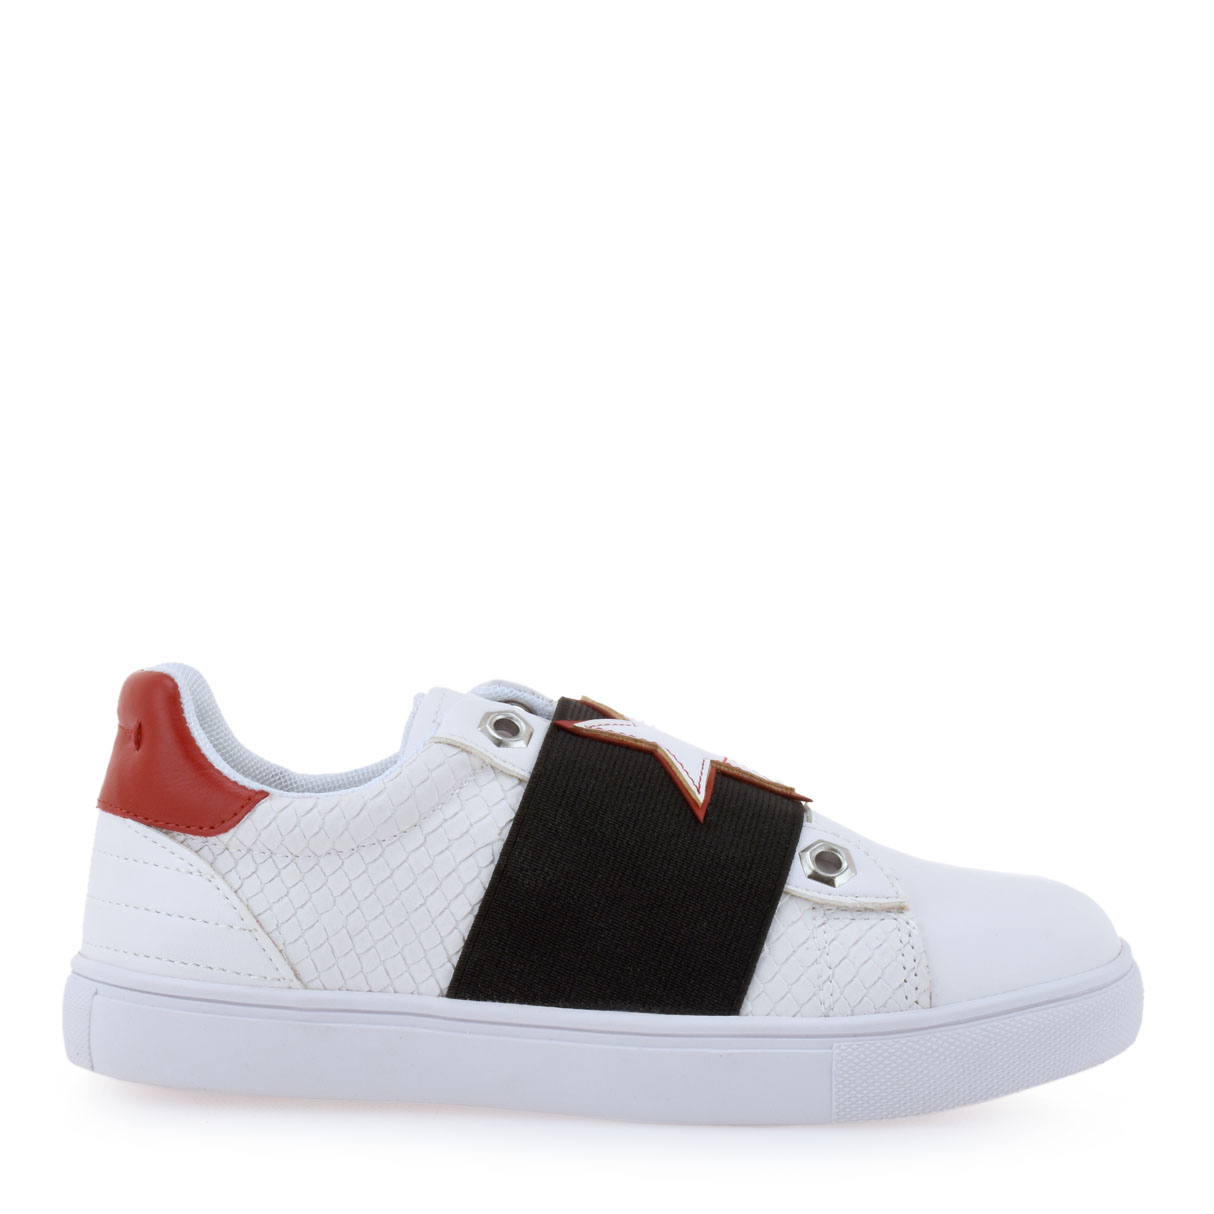 EXE KIDS SNEAKERS σχέδιο: KA7004681